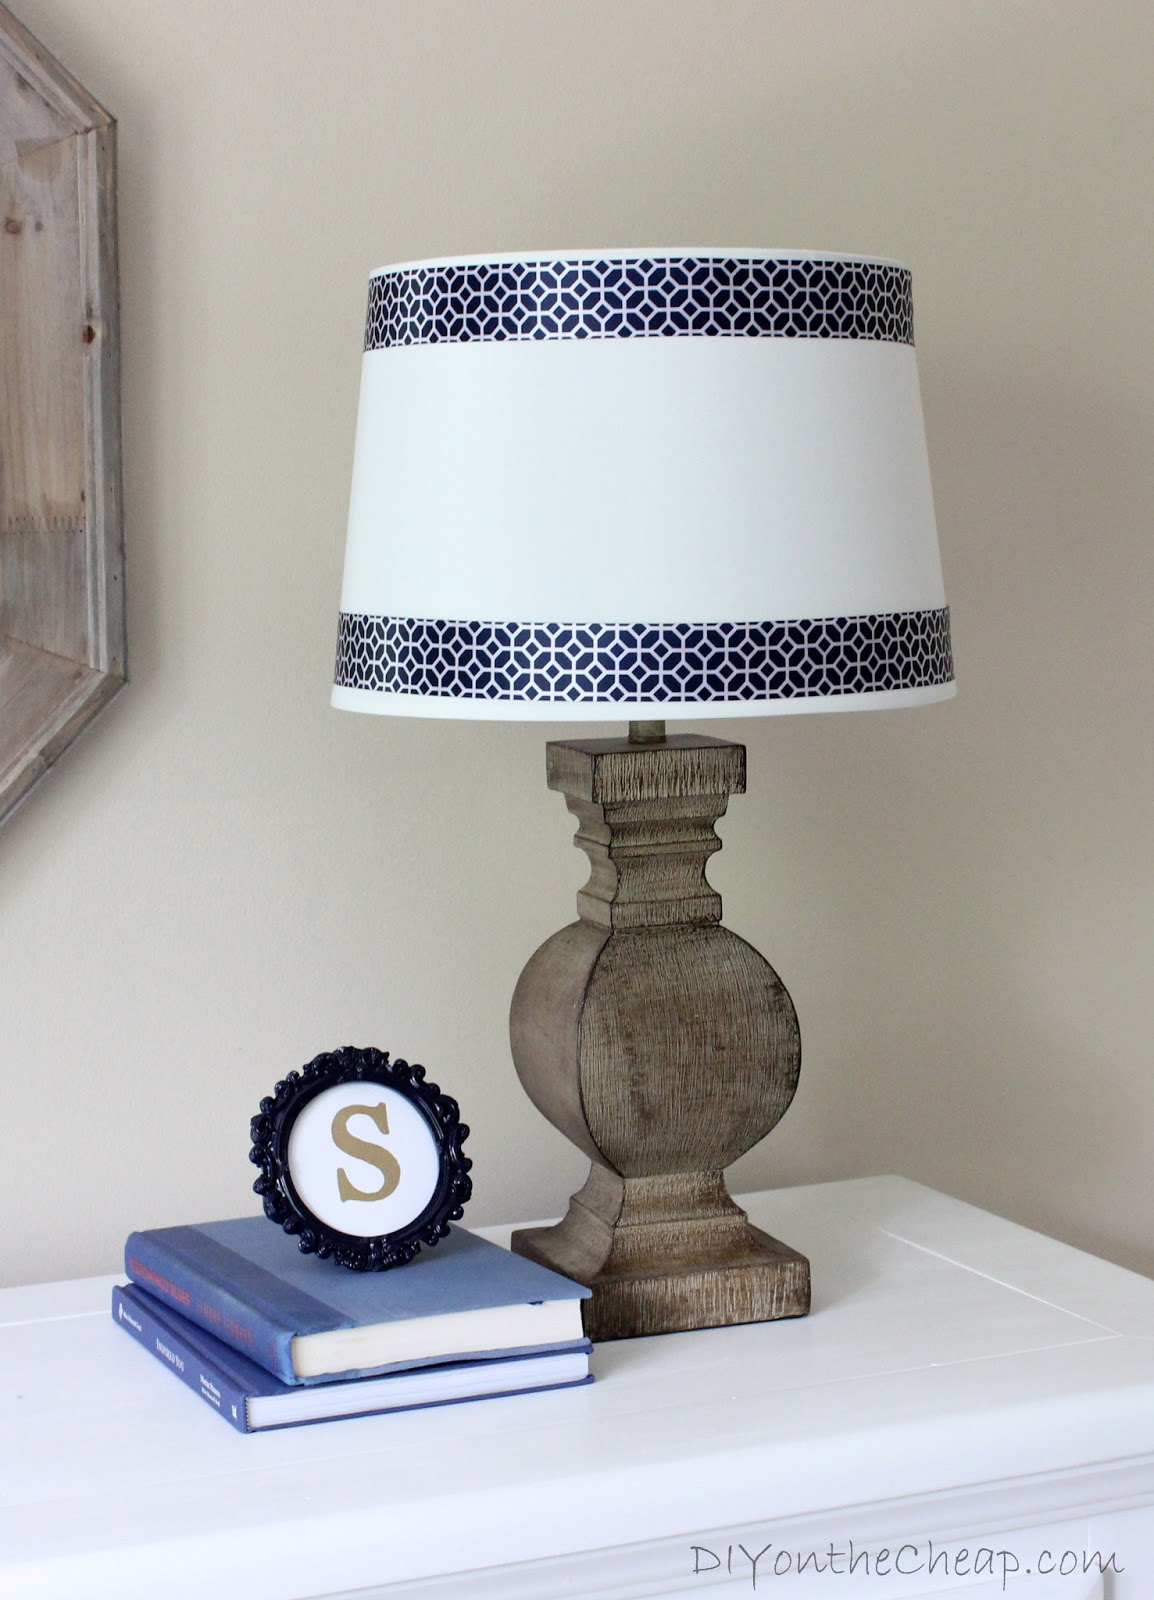 Easy peasy lamp shade ribbon trim erin spain - Diy lamp shade ...